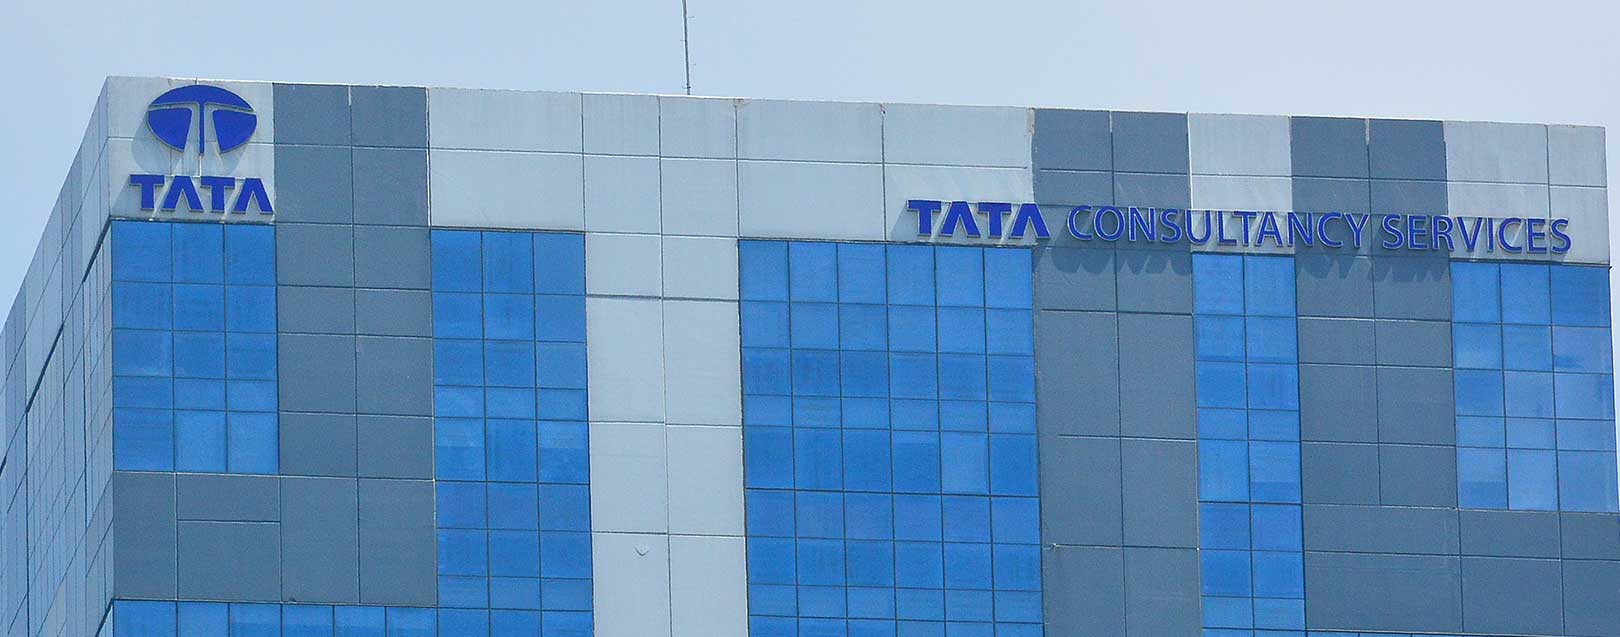 Turnbull asks TCS to open innovation centre in Australia